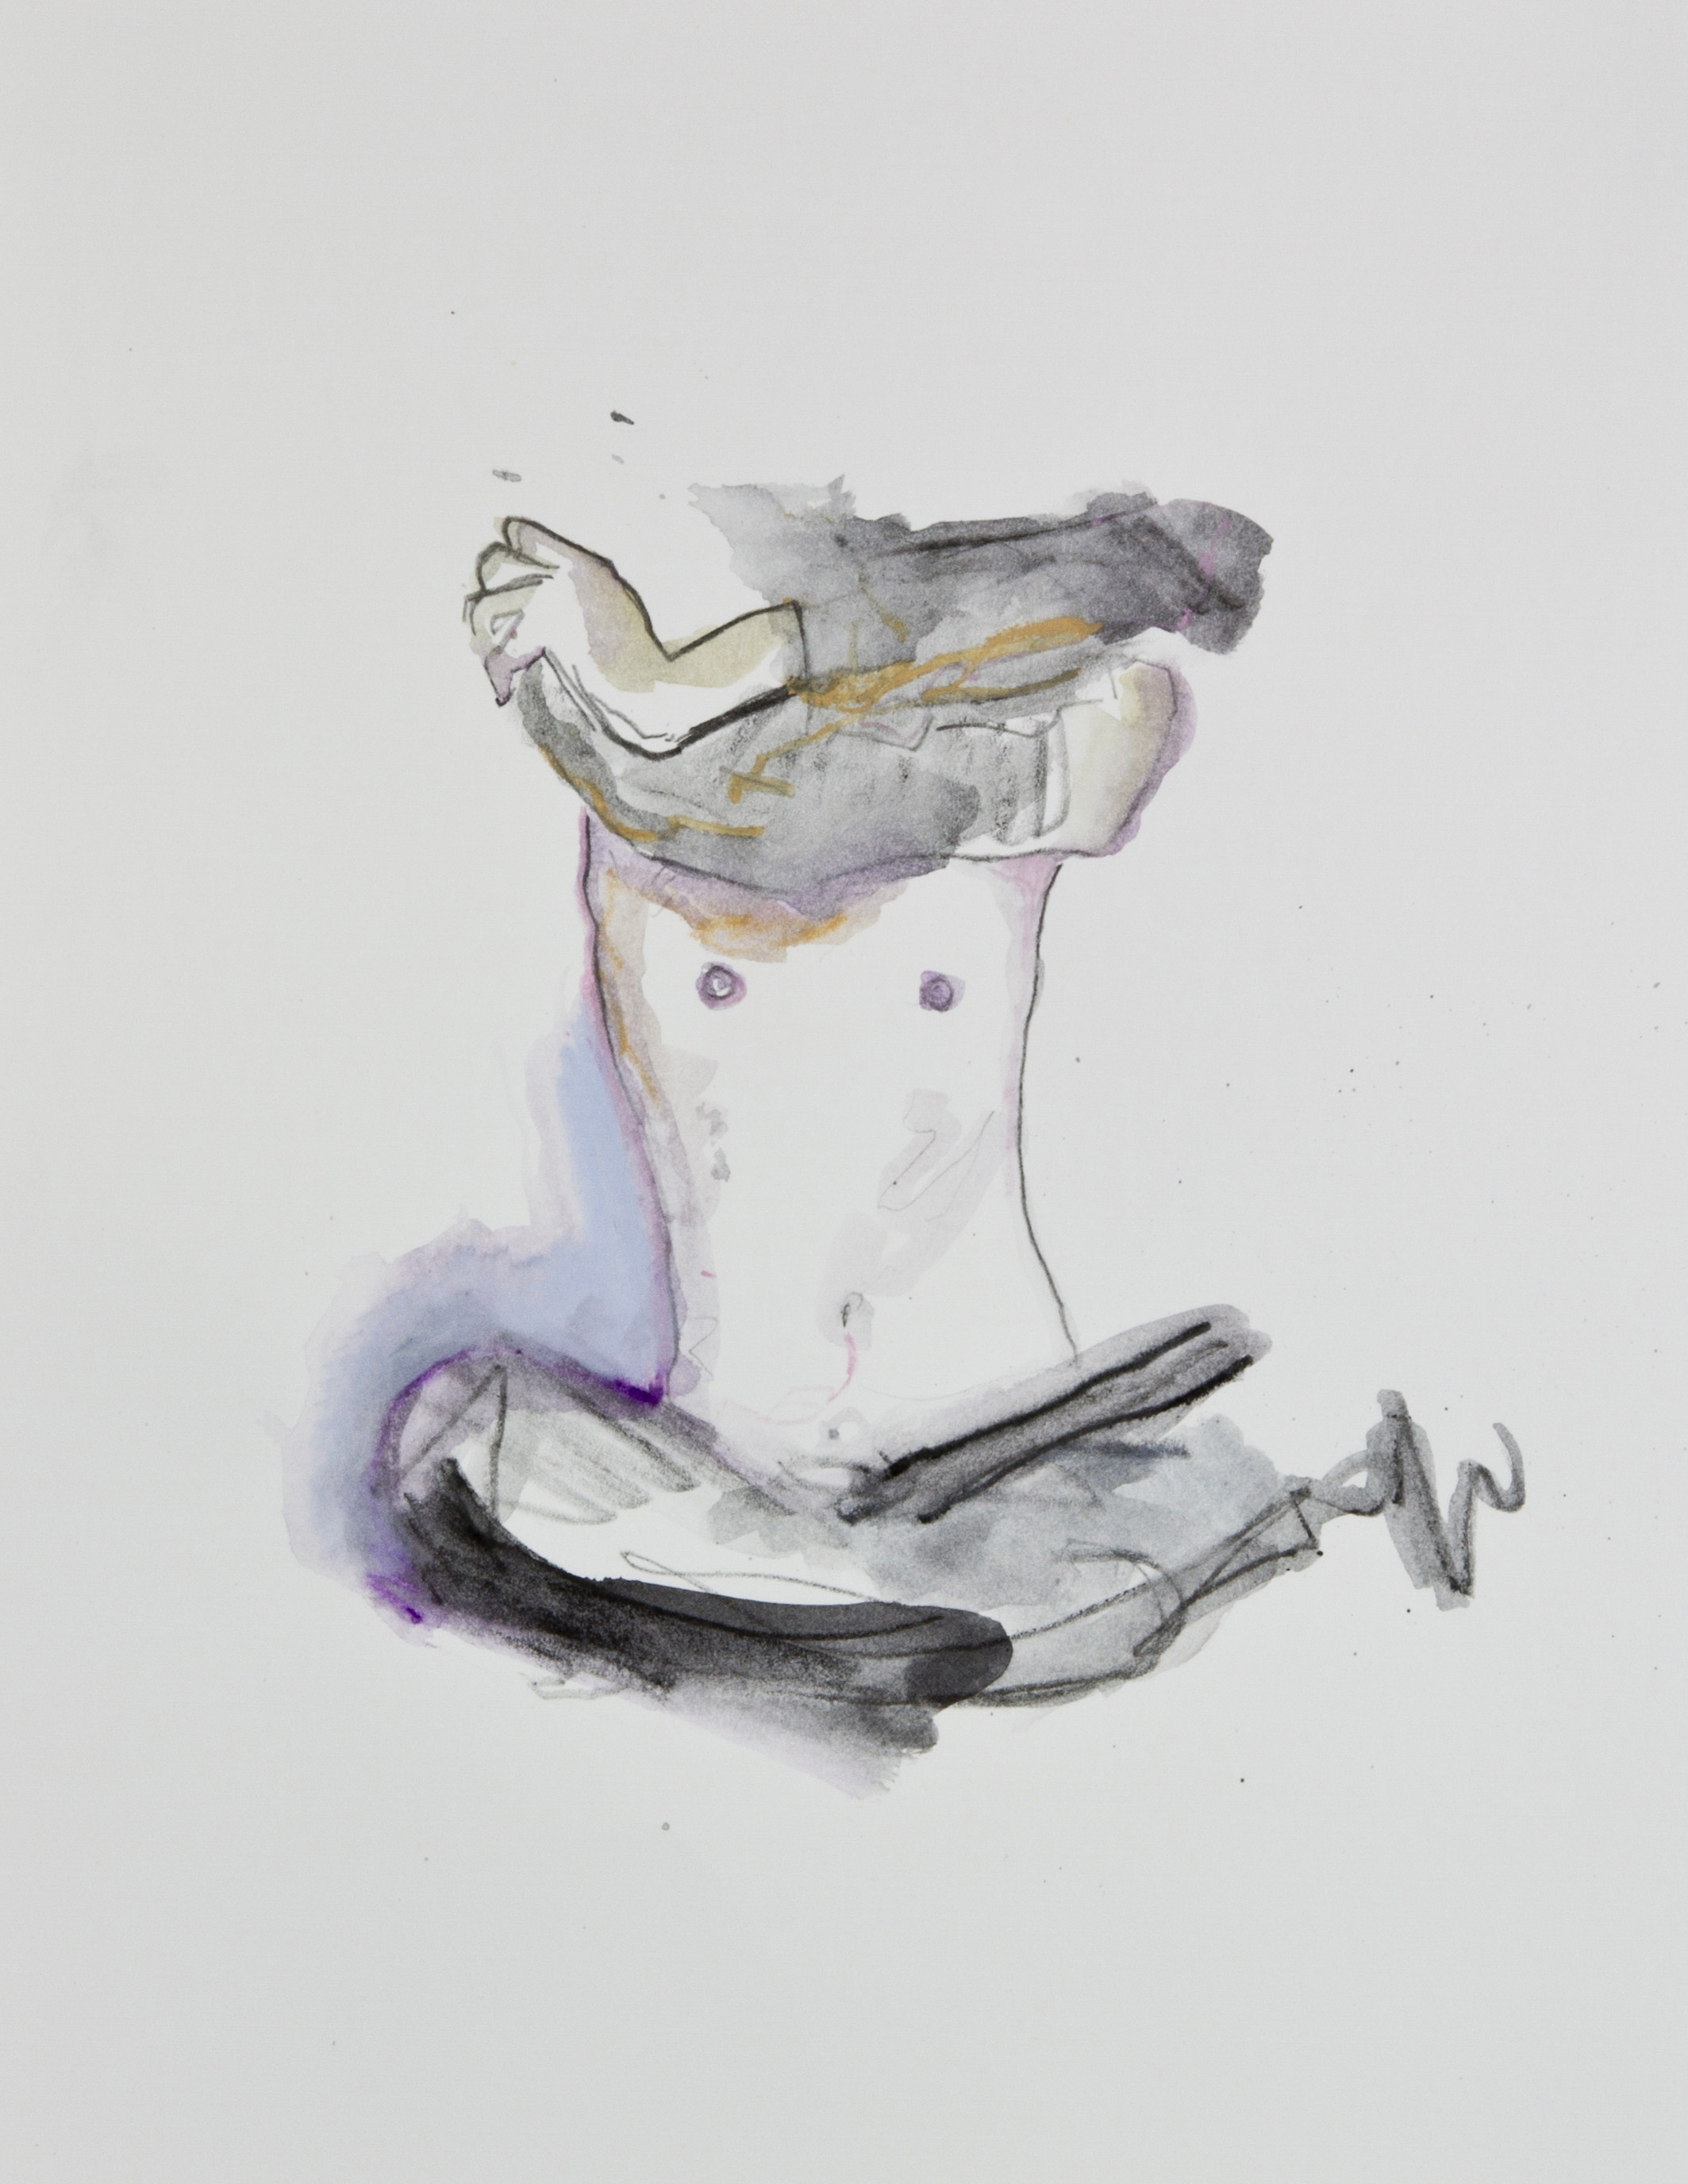 Stripping Them into Nothing, 2013, graphite, crayon and watercolor pencil on paper, 11x14 inches